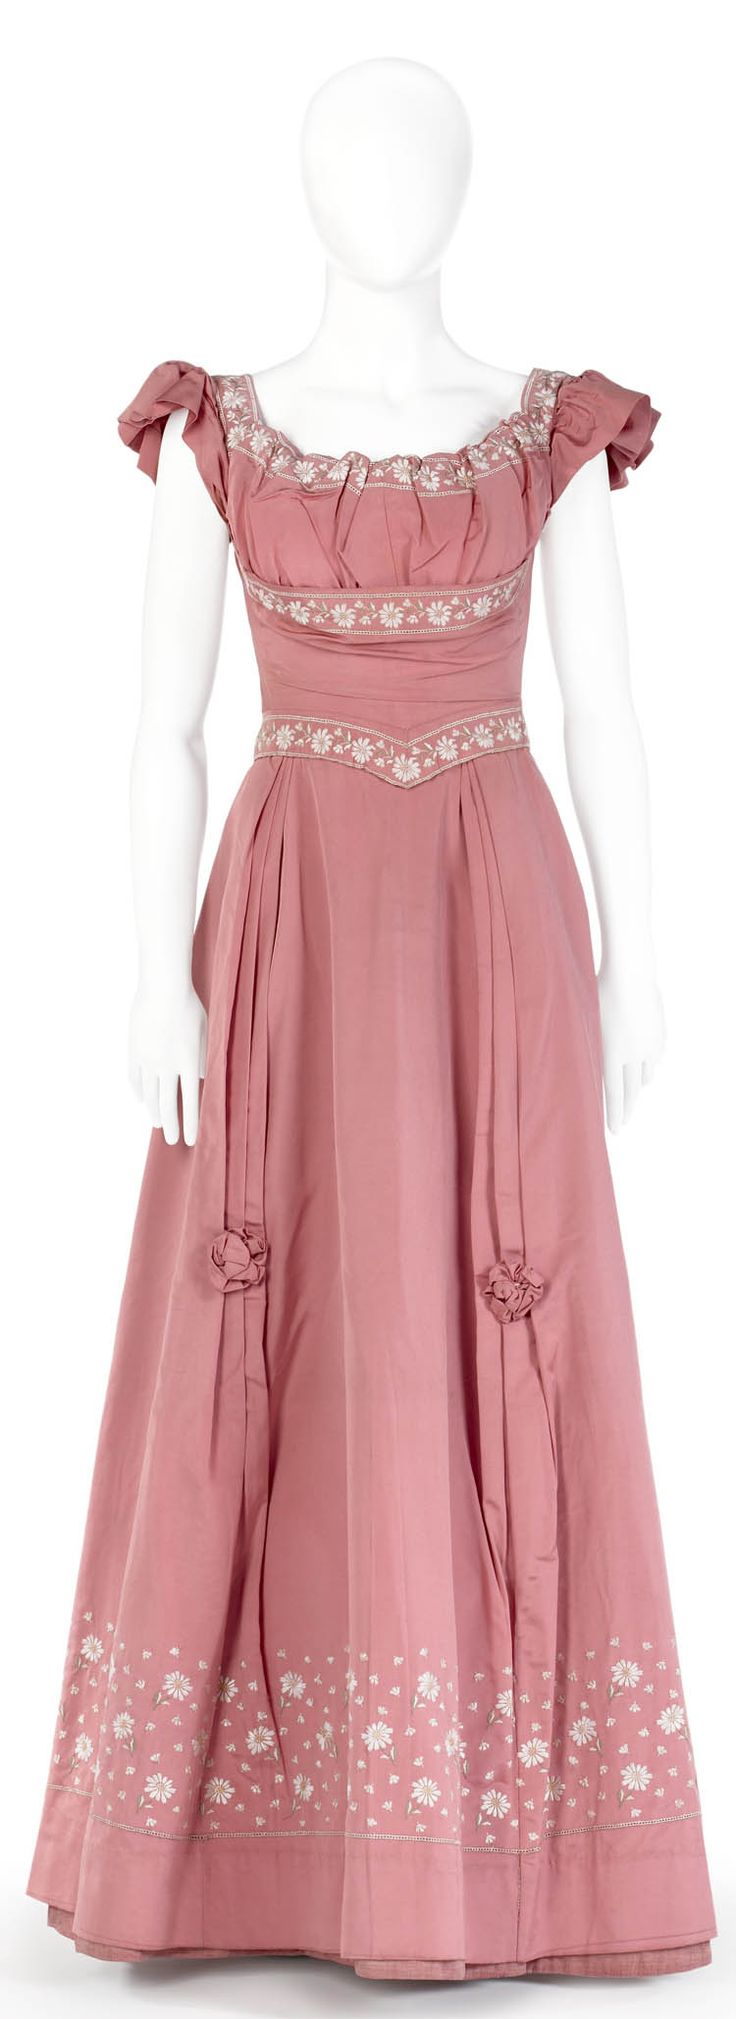 best victorian fashions images on pinterest victorian